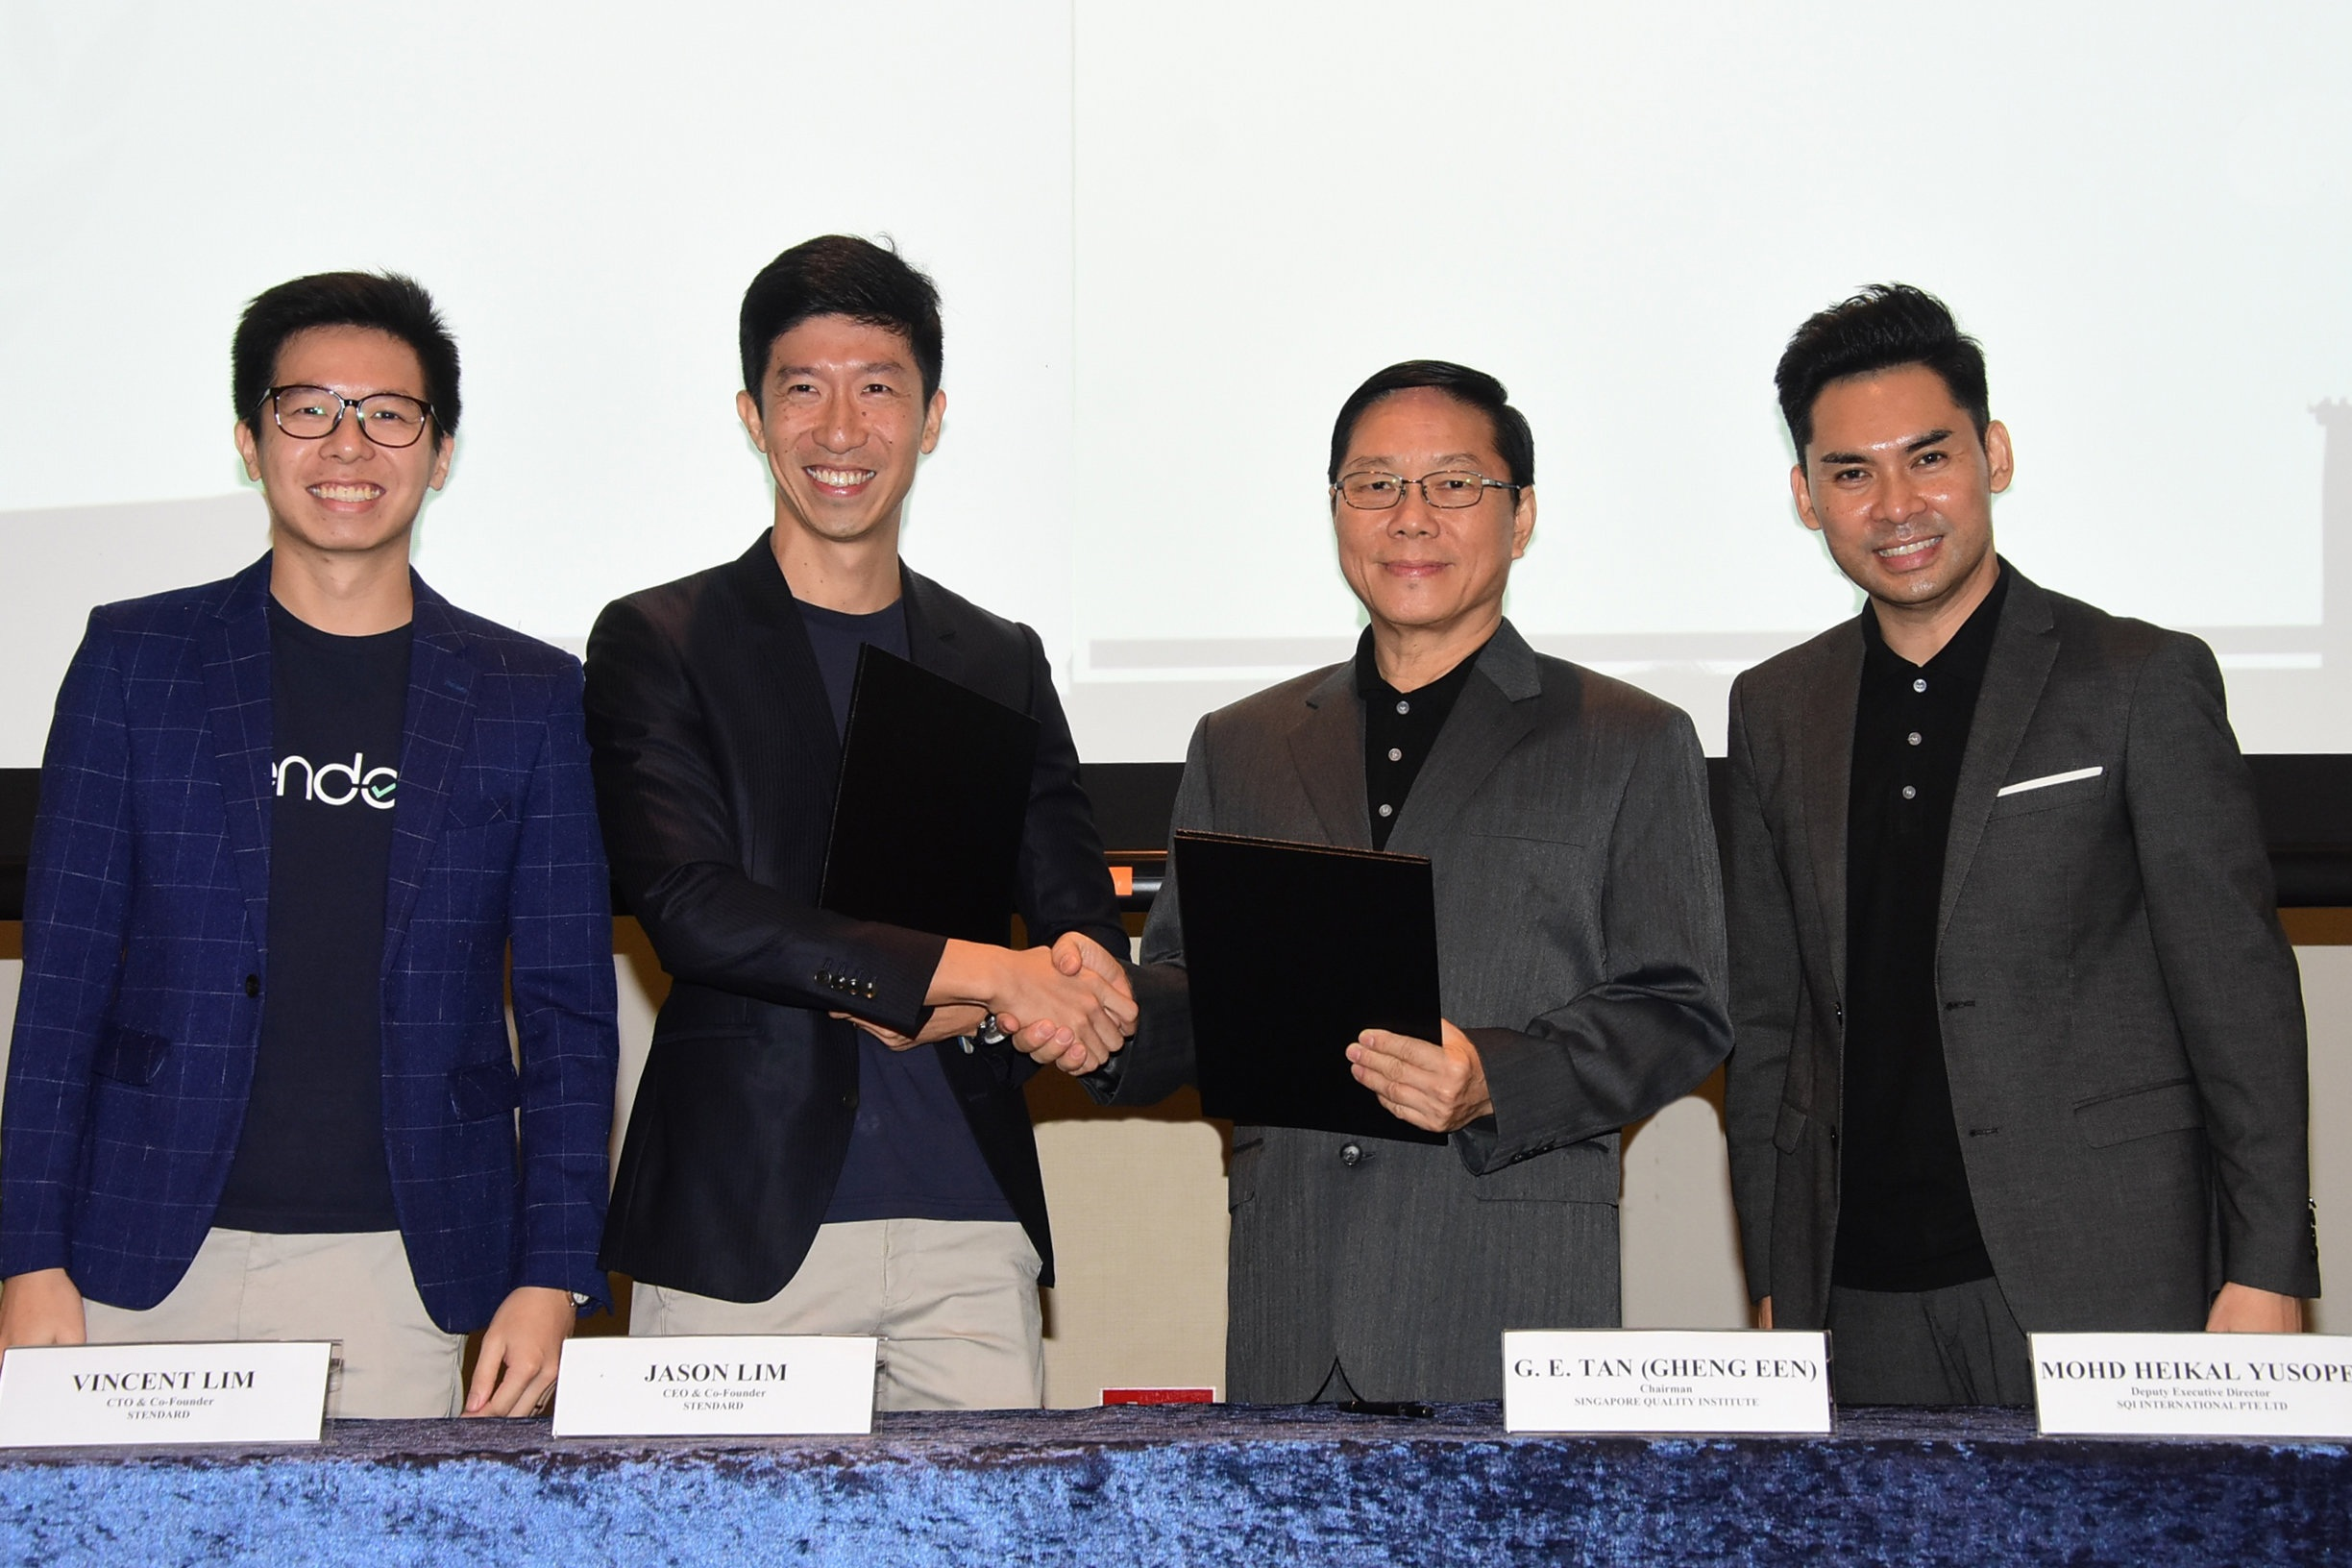 Left to right: Vincent Lim (CTO & Co-founder, Stendard), Jason Lim (CEO & Co-founder, Stendard), G.E. Tan (Chairman, SQI), Heikal Yusope (Deputy Executive Director, SQI)